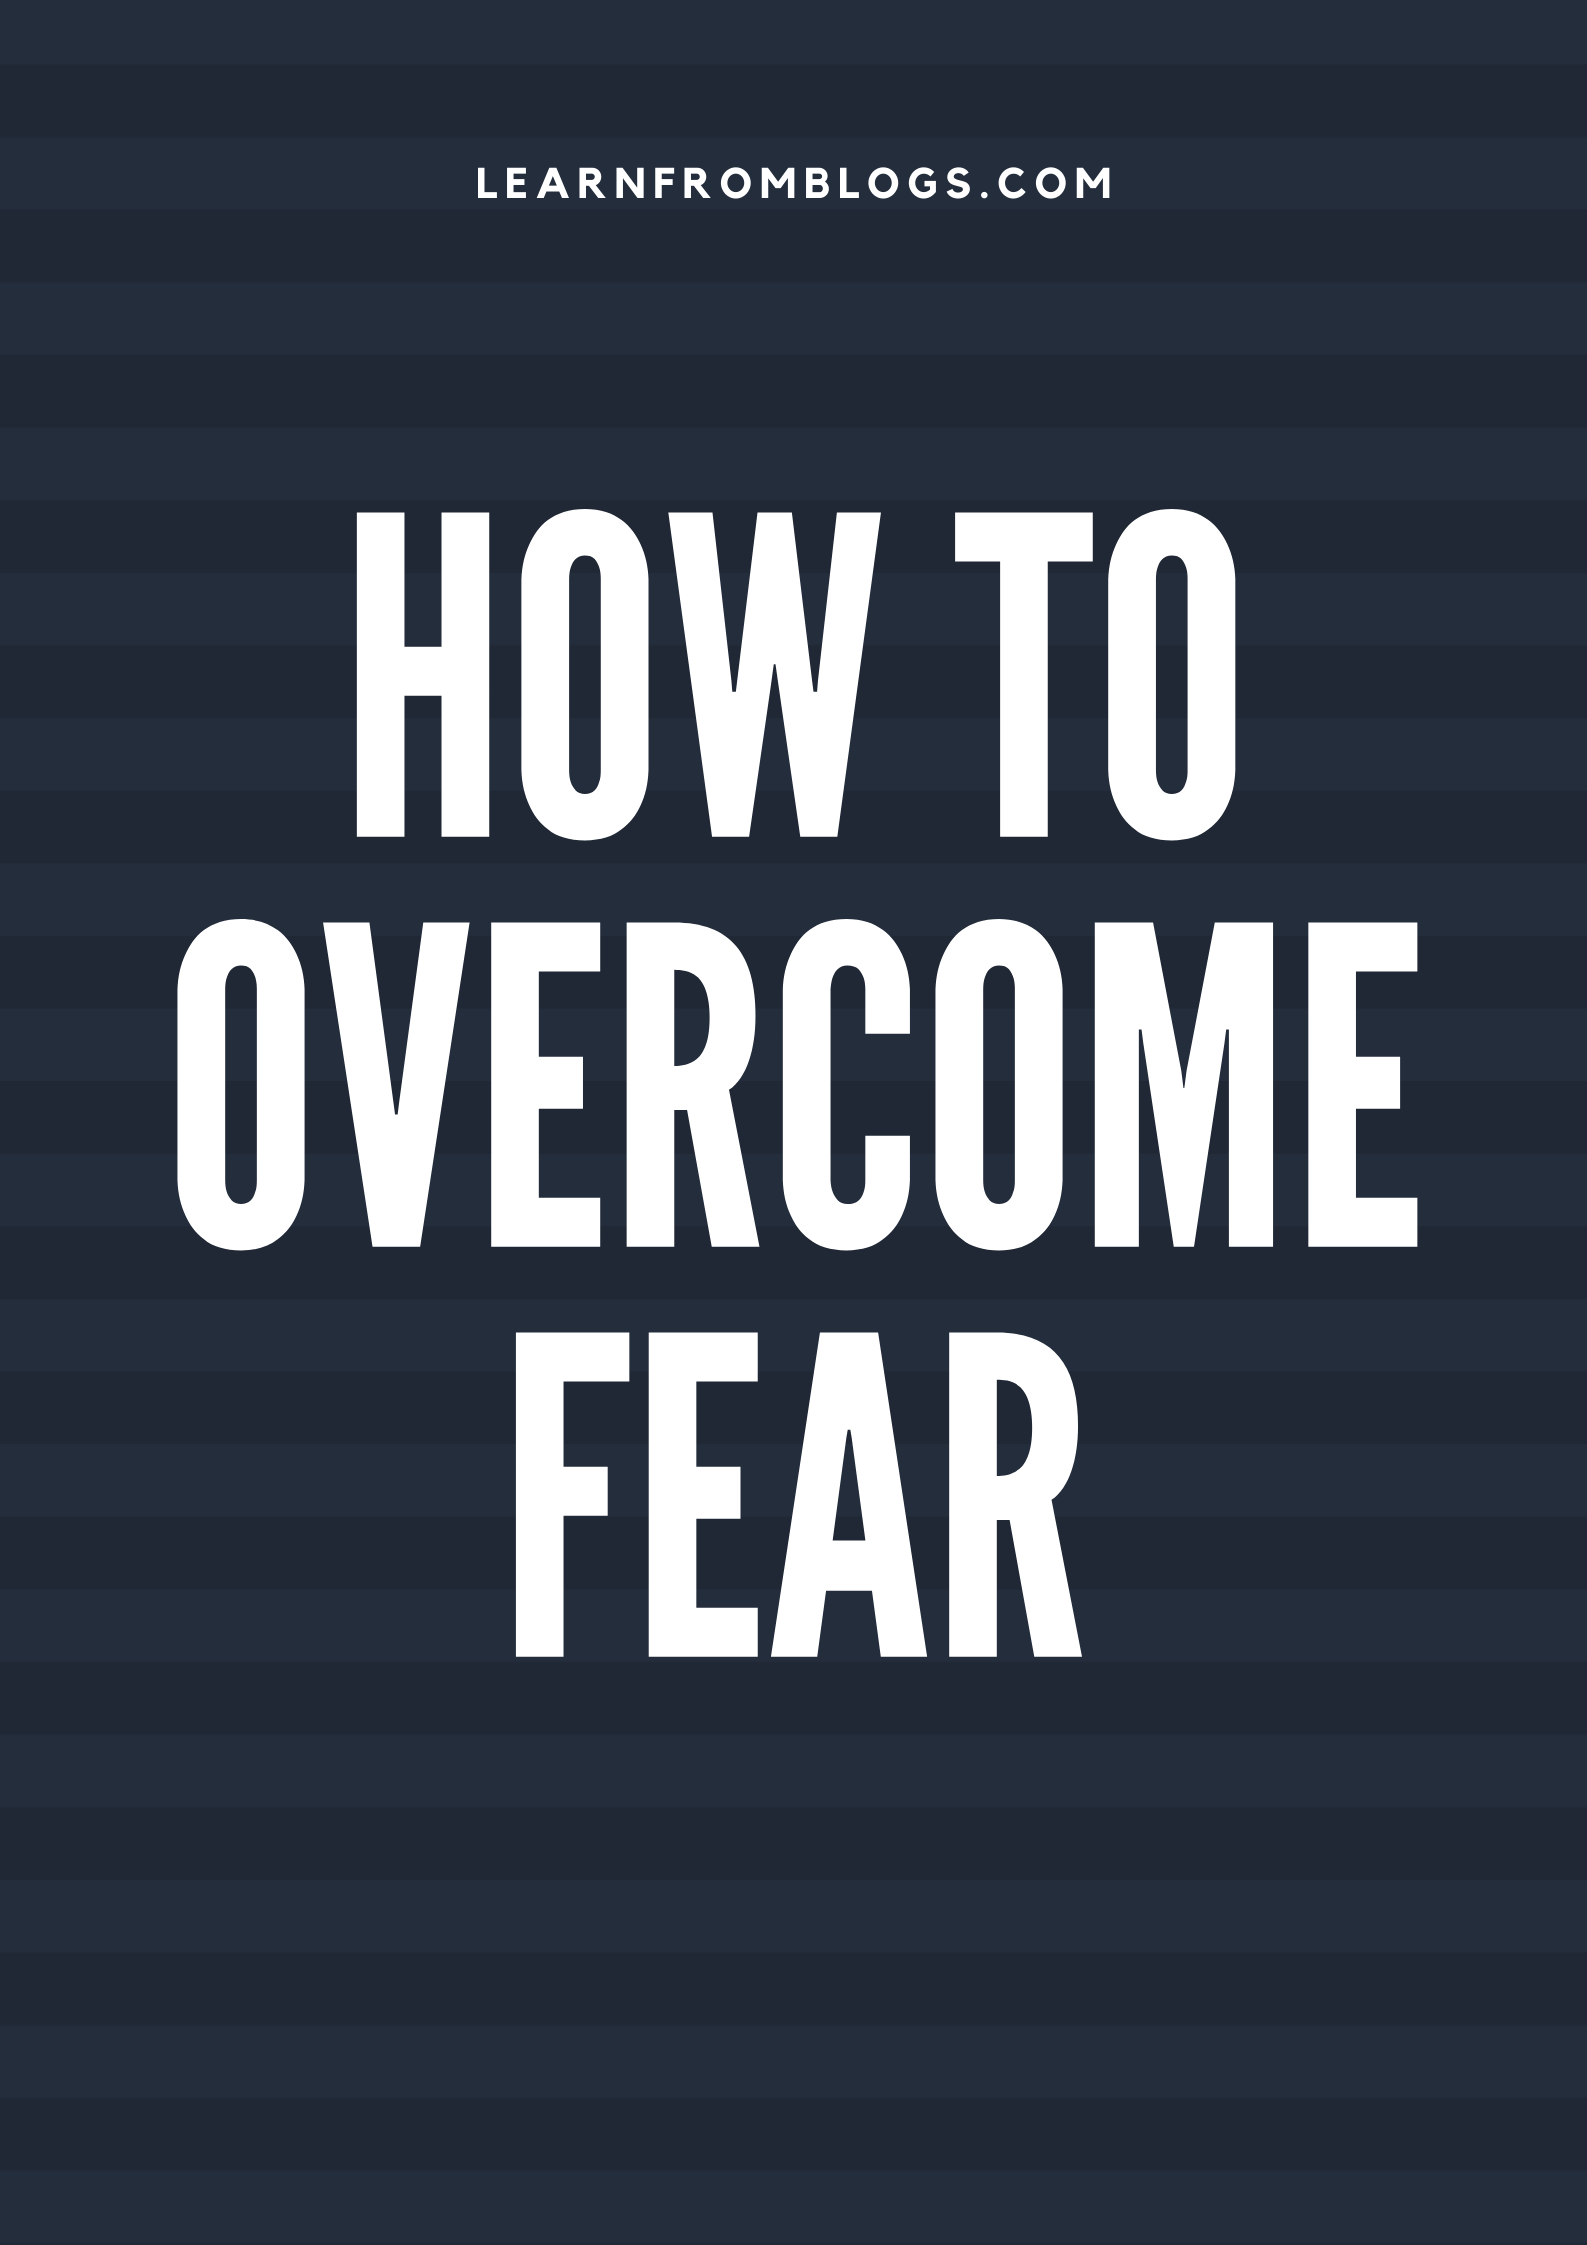 How To Overcome Fear.png